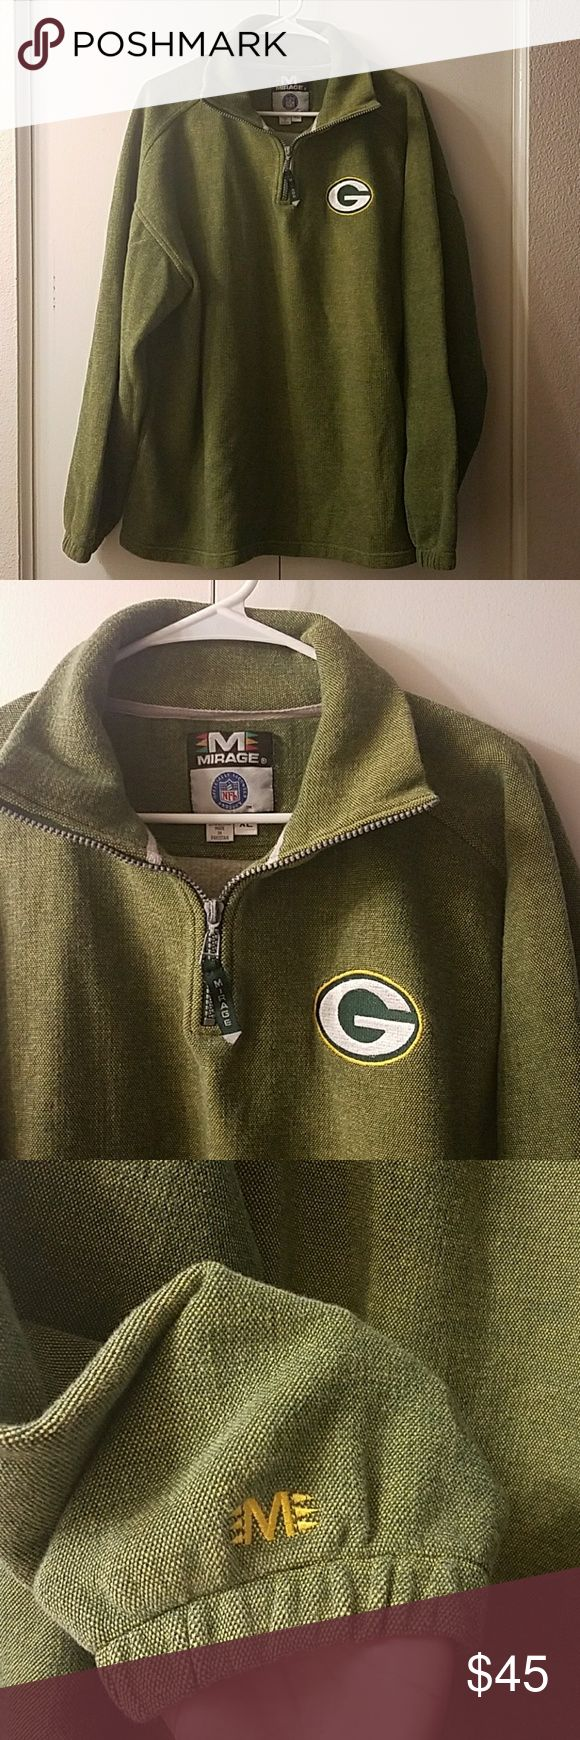 Men's Green Packers Sweater Men's Green Packers Sweater  Size XL 80% COTTON 20% POLYESTER  Used in great condition,no stains or tears Mirage Sweaters